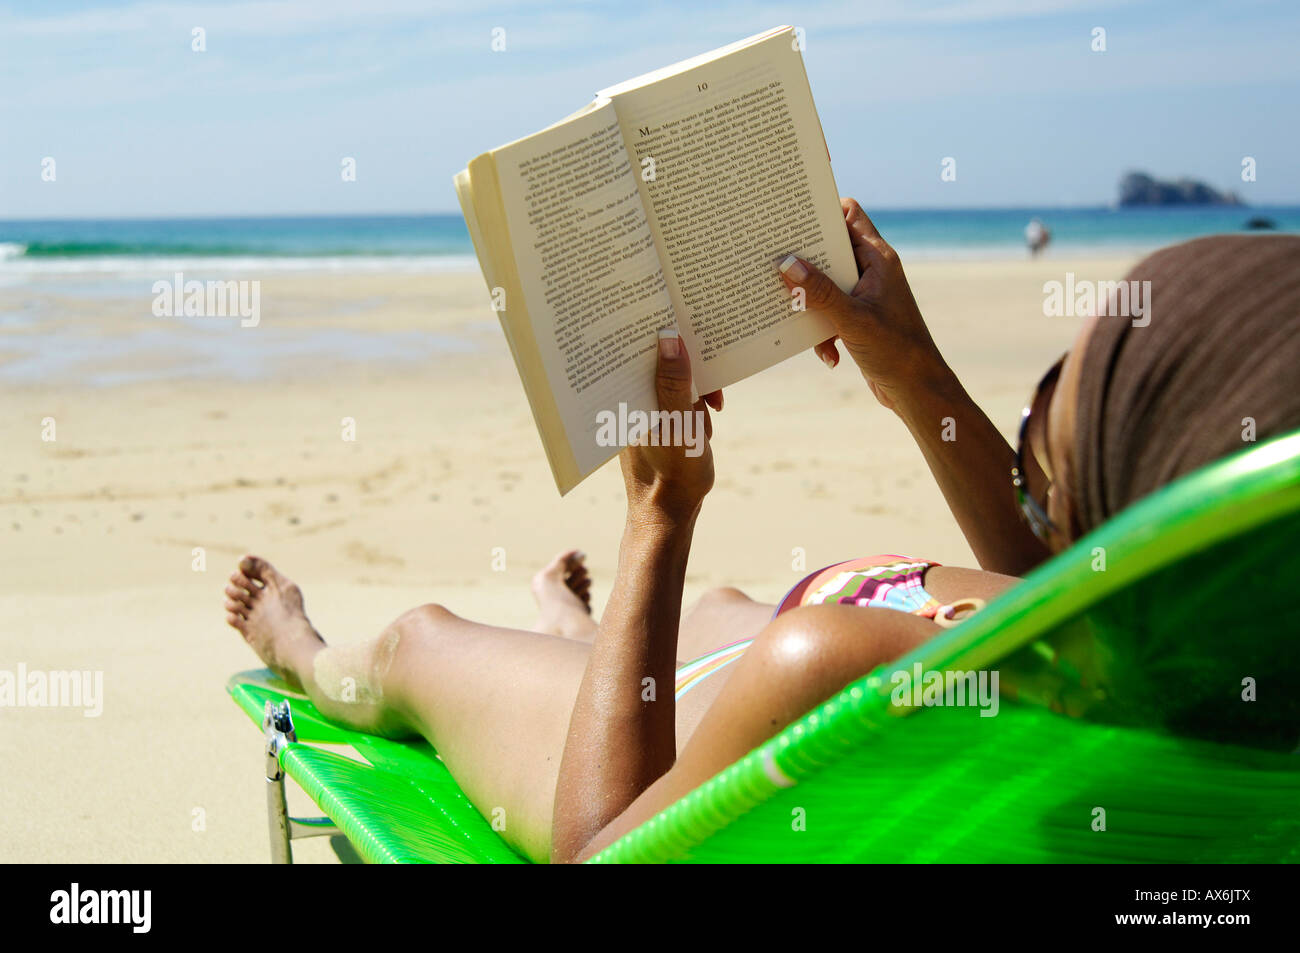 Rear view of woman reading book on beach chair - Stock Image